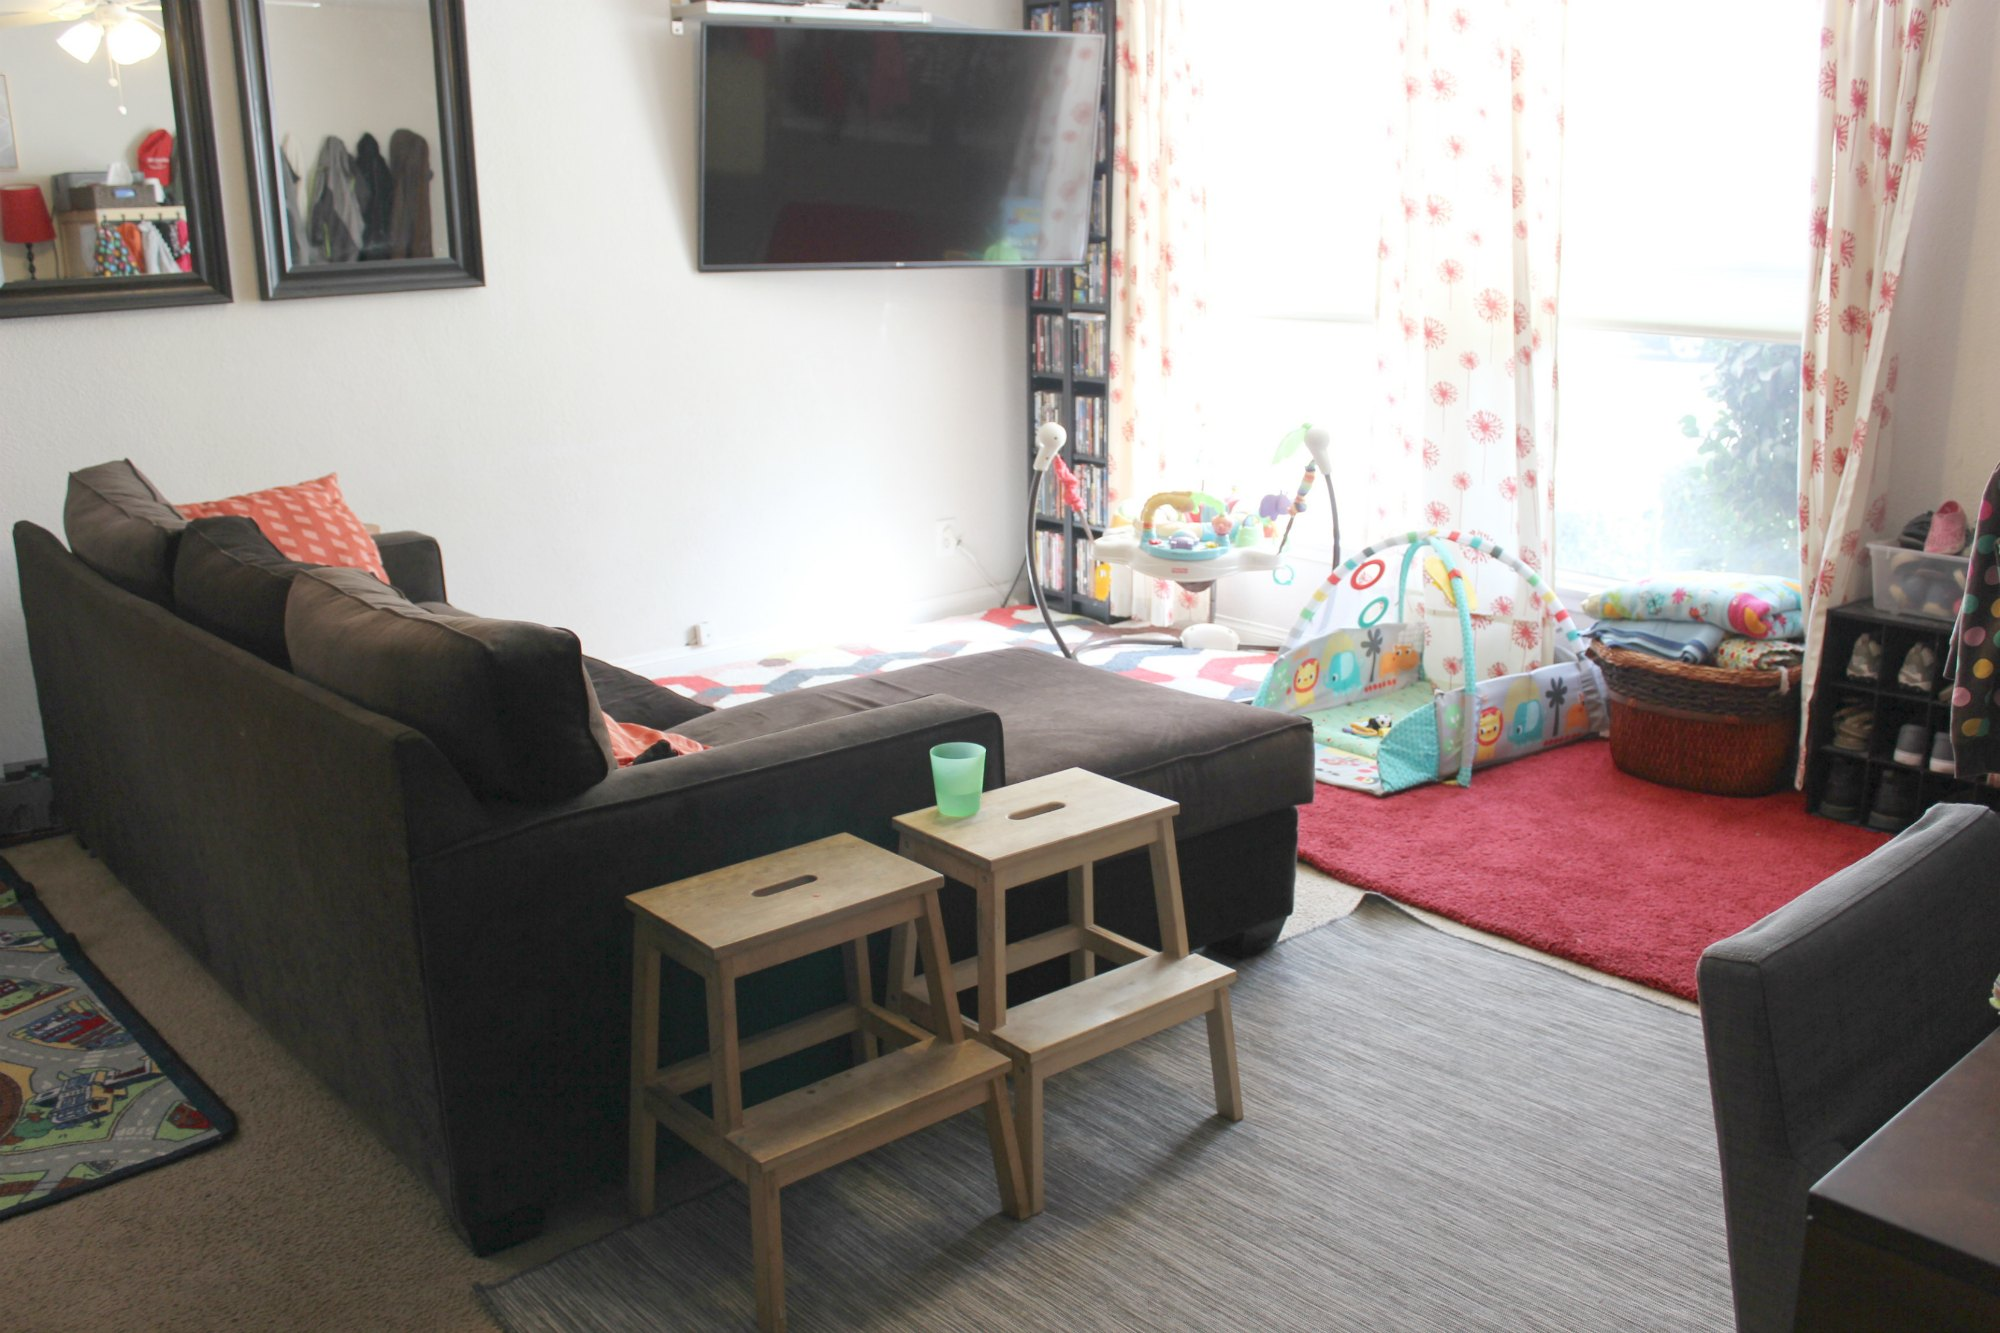 700 sq ft Family of 5 Our Small Home Living Room Area